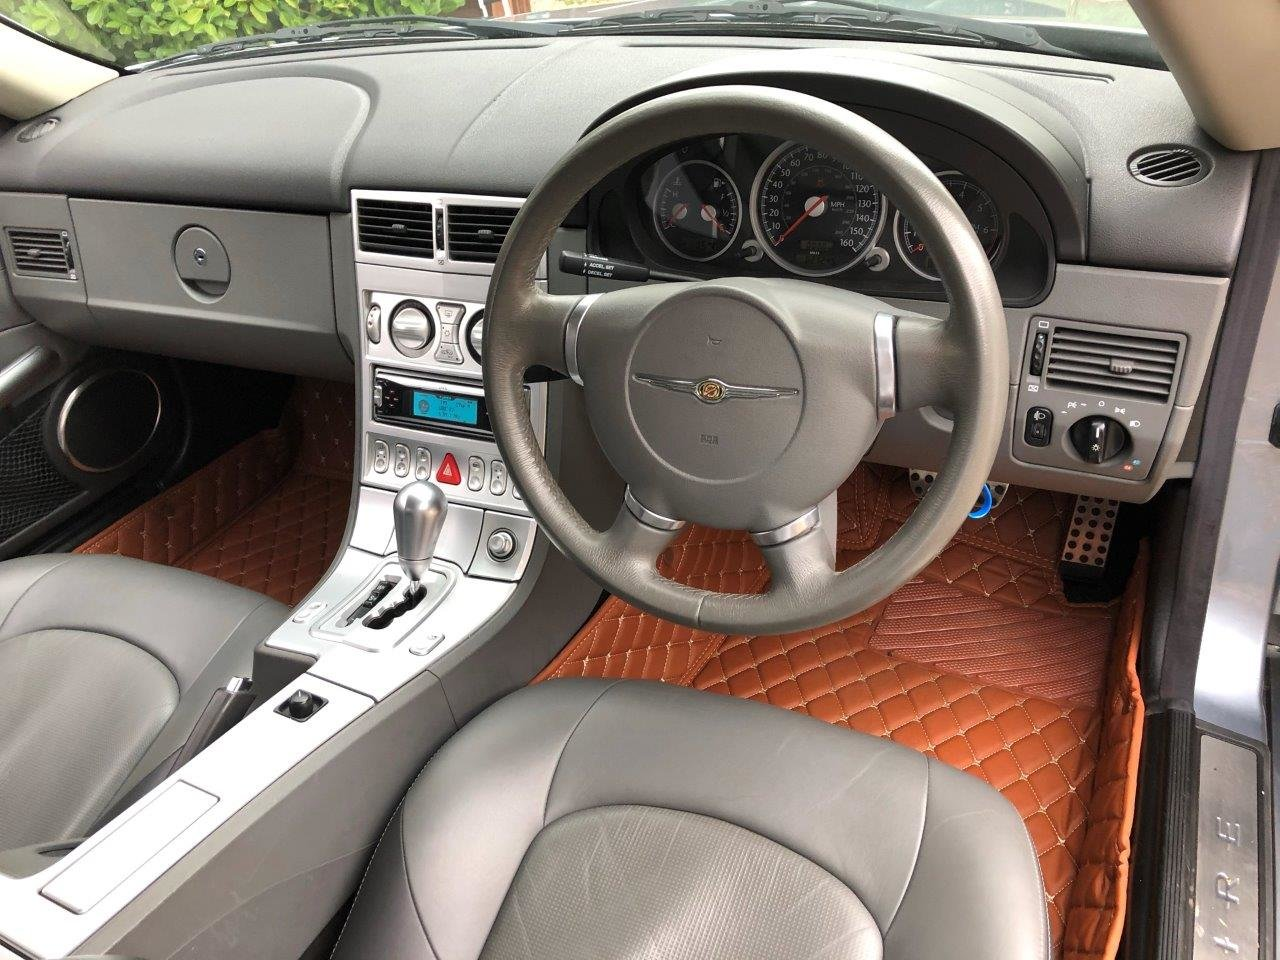 2003 Chrysler Crossfire 3.2i V6 Coupe 5-Speed Automatic SOLD (picture 10 of 12)